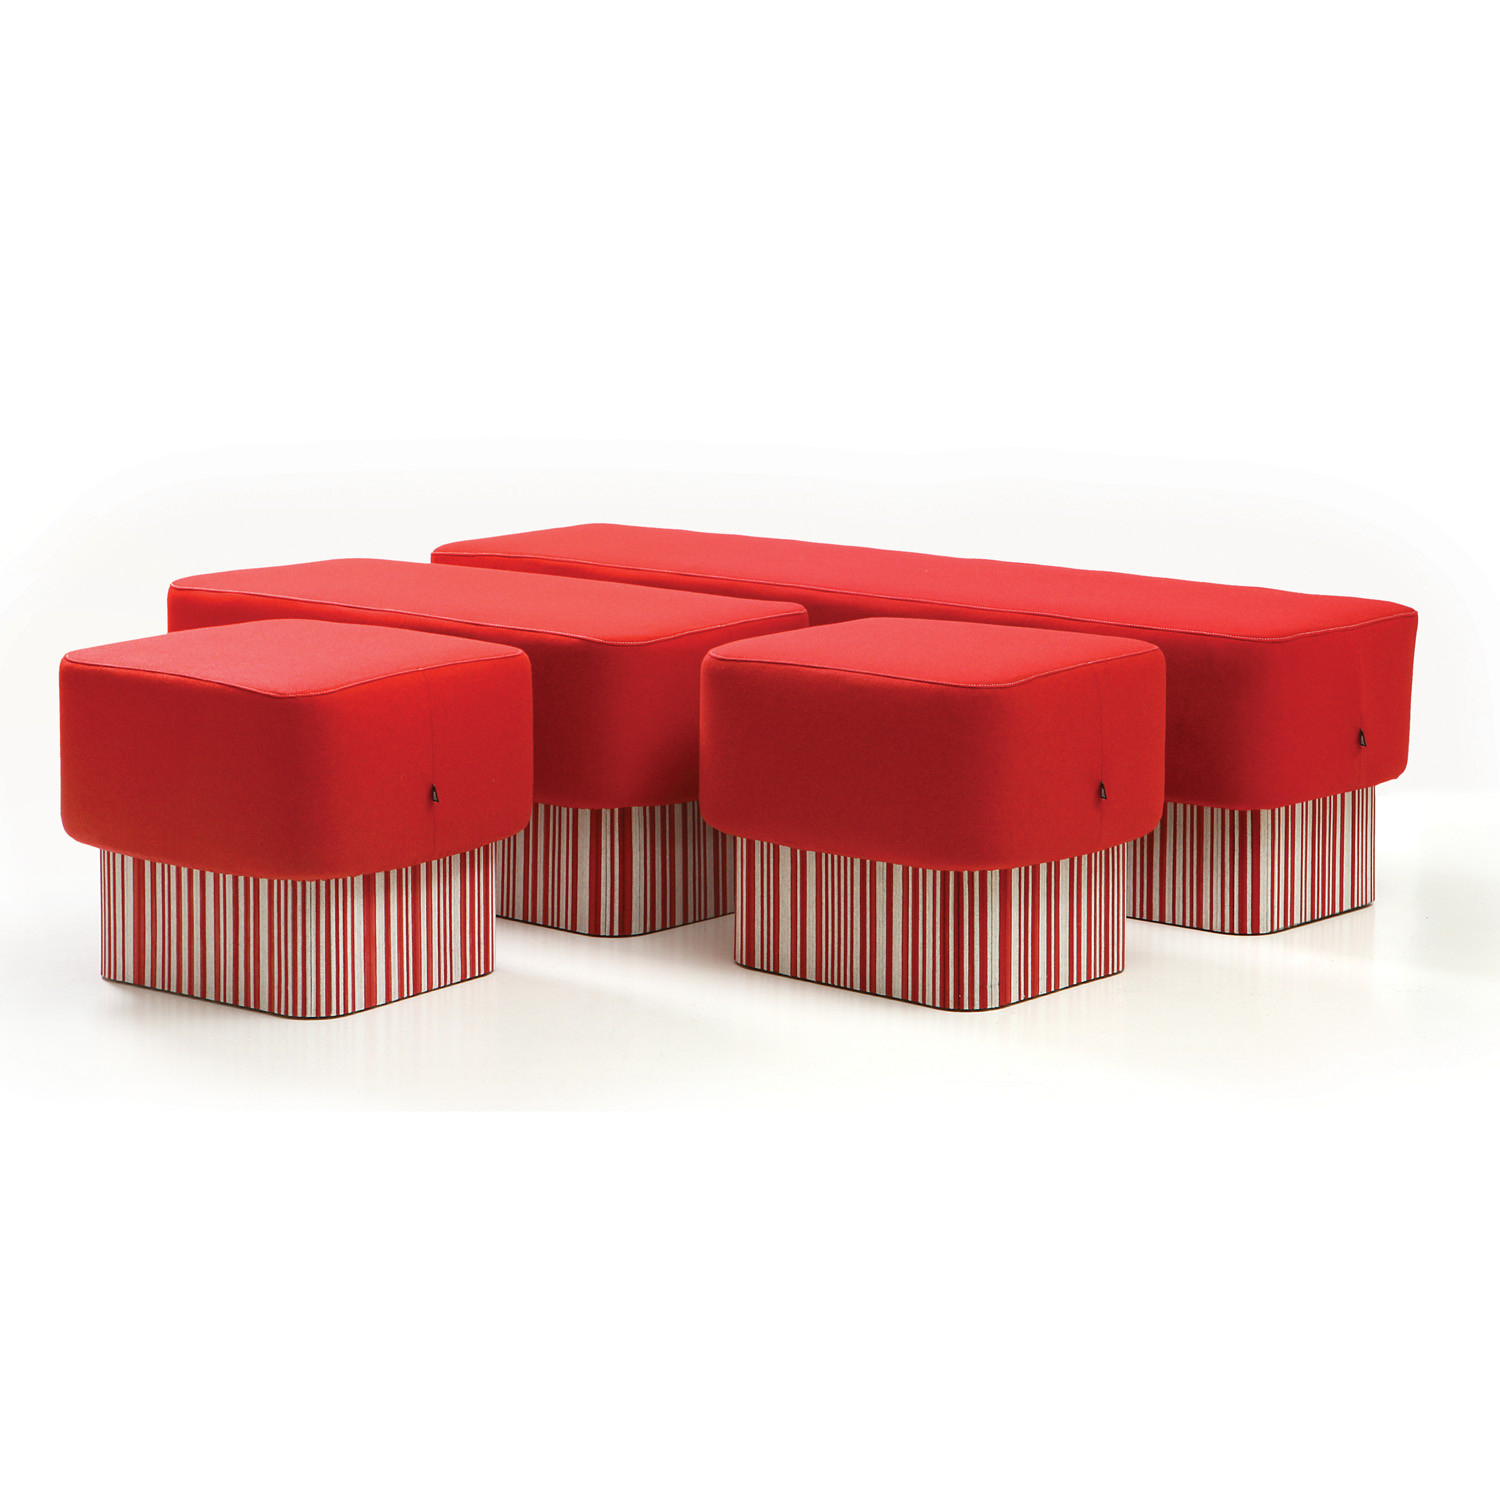 BuzziSeat Stool and Benches